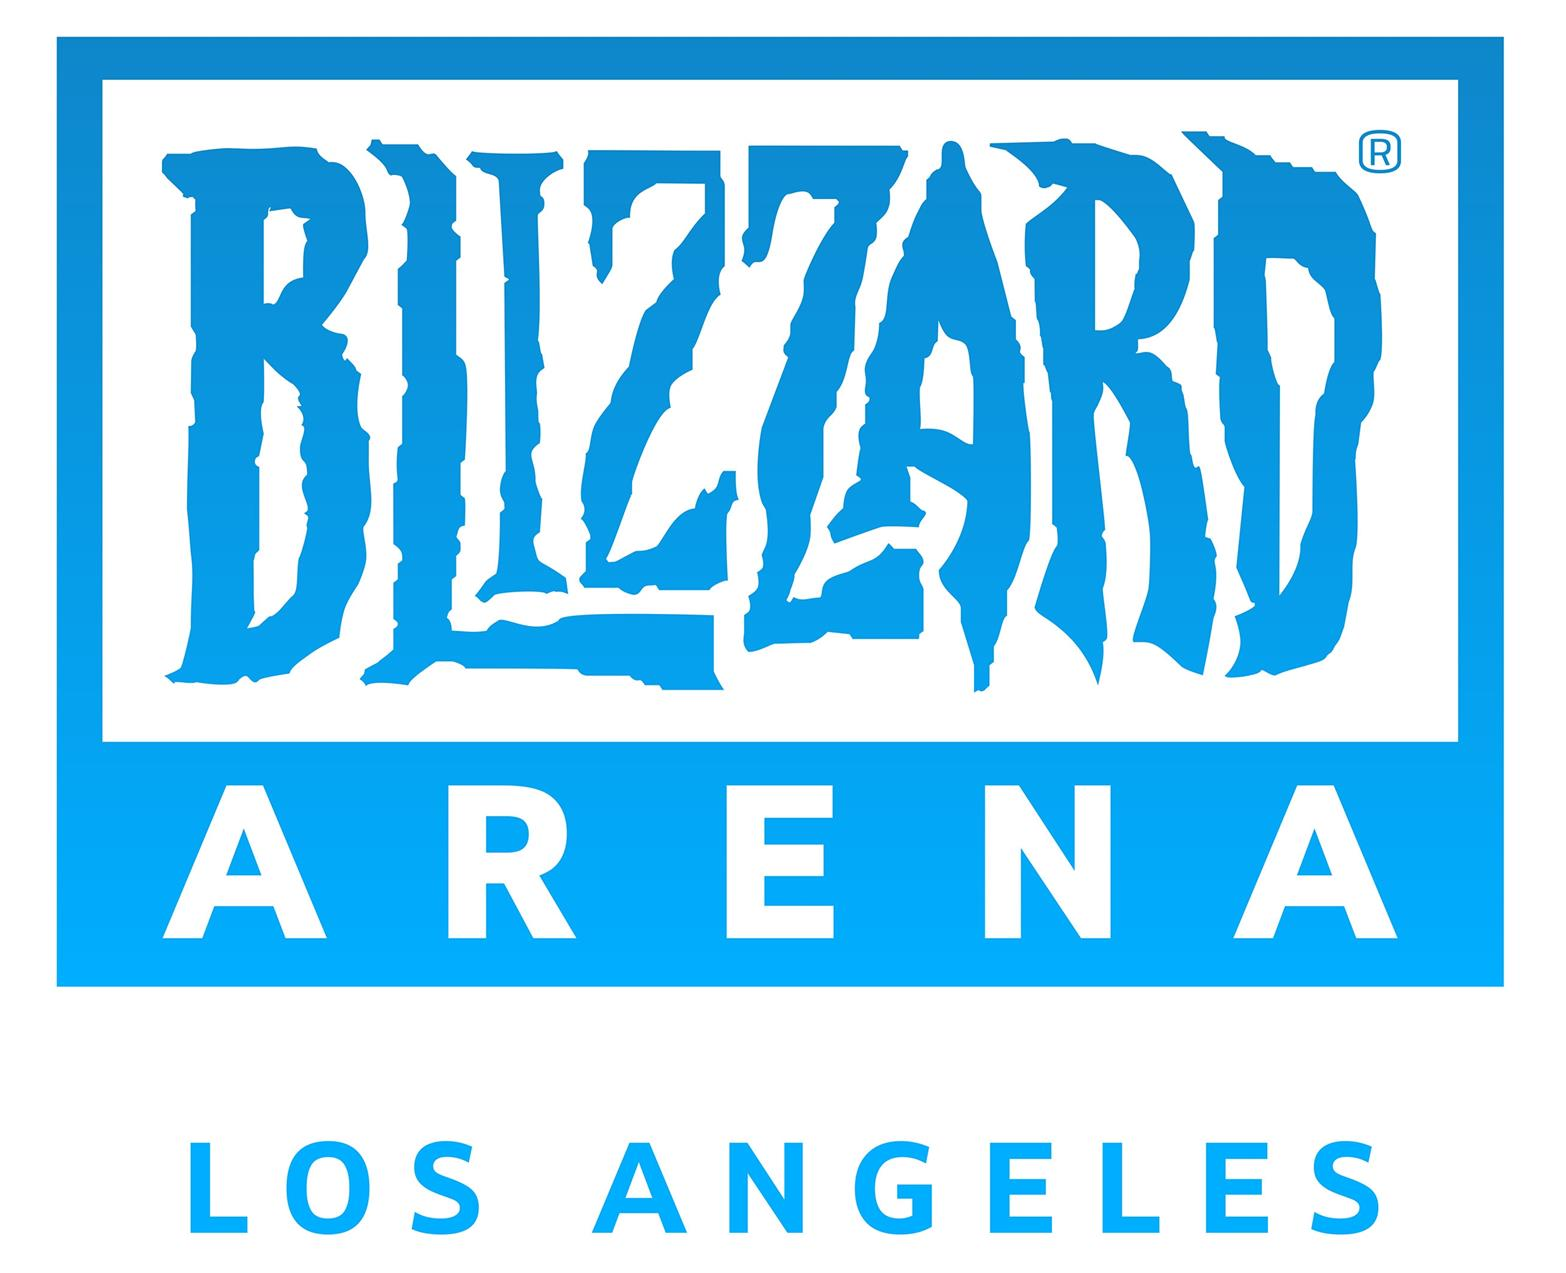 Former 'Tonight Show' studio becomes new Blizzard Arena esports venue